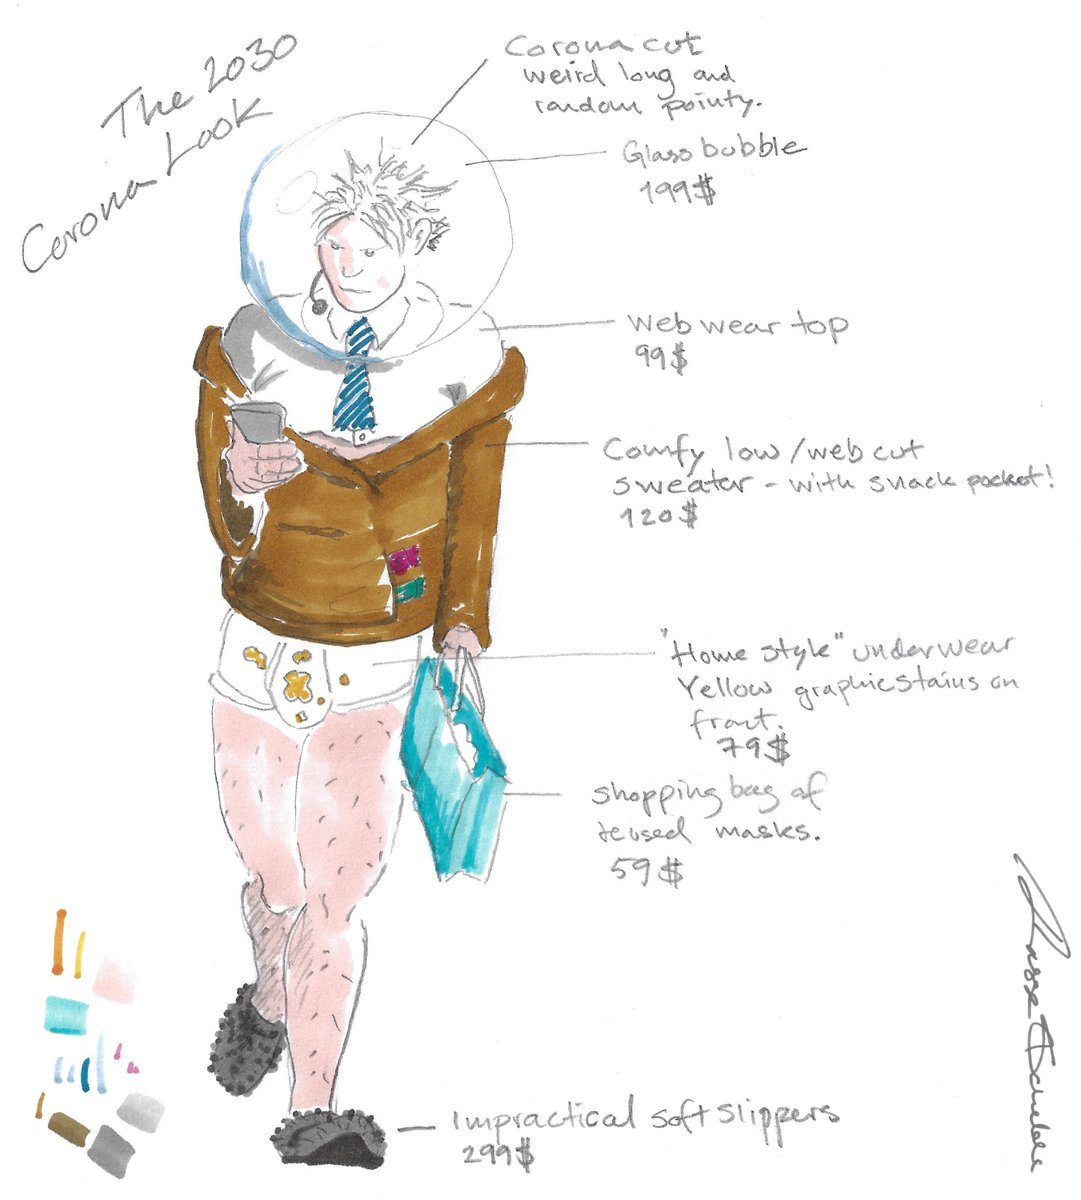 Hey #Fashionistas! Here is my #fashion prediction for 2030 when the Corona-vintage style returns. Brace yourself for a FULL year collection. Think into the bubble! #OOTD #FashionBlogger #style. #StreetStyle #2030 #OutfitIdeas @fashionpressnet https://t.co/FXTY0ZPq7s